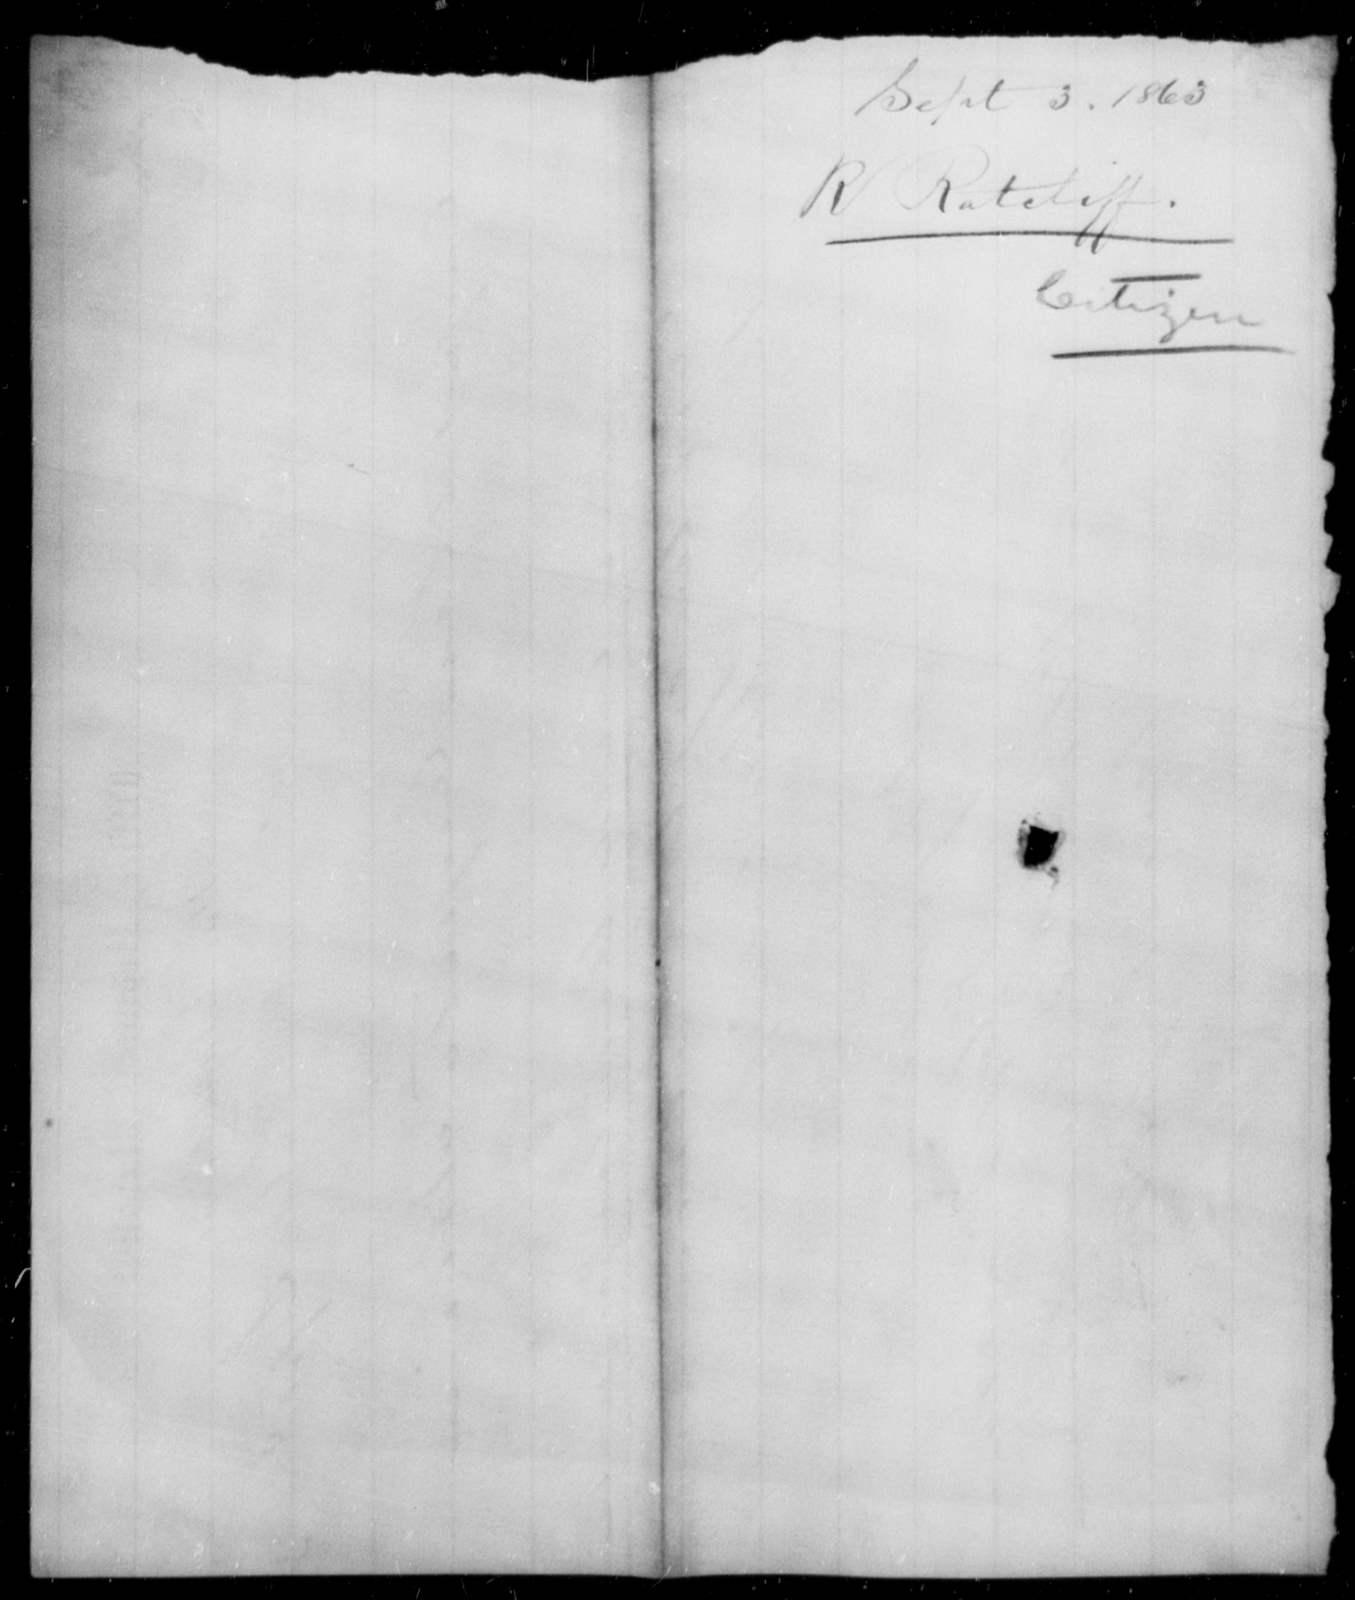 Ratcliff, Robert - State: [Blank] - Year: 1863